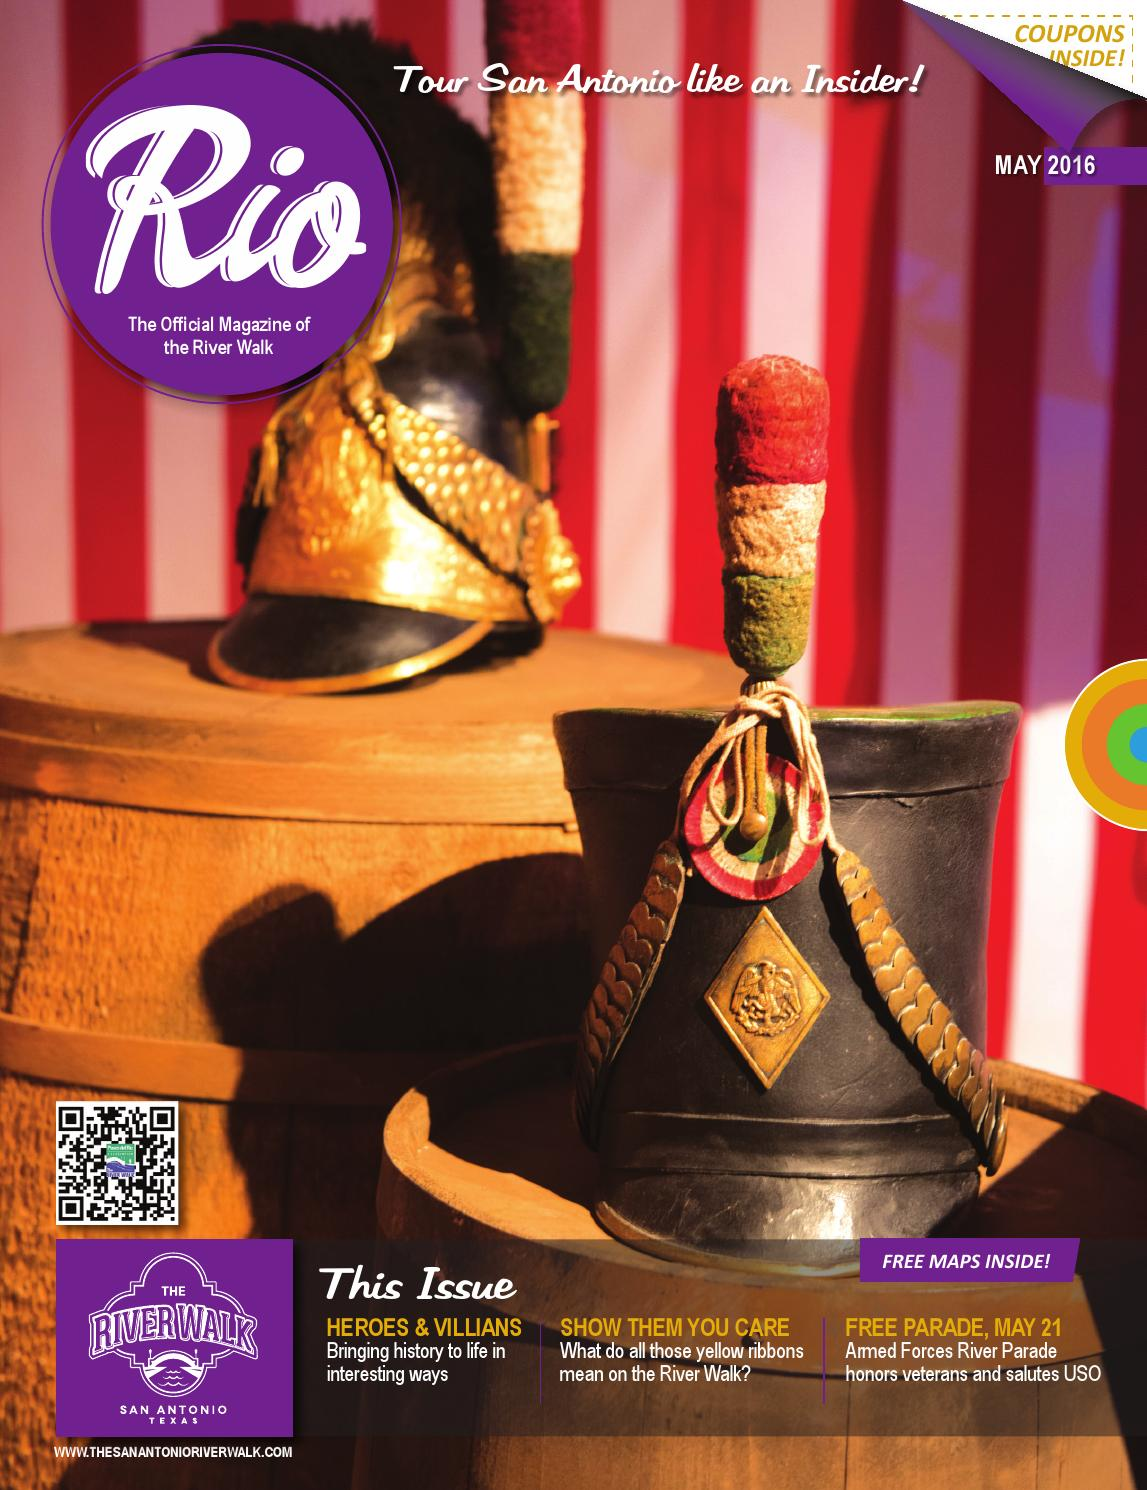 rio magazine may 2016 by traveling blender - issuu